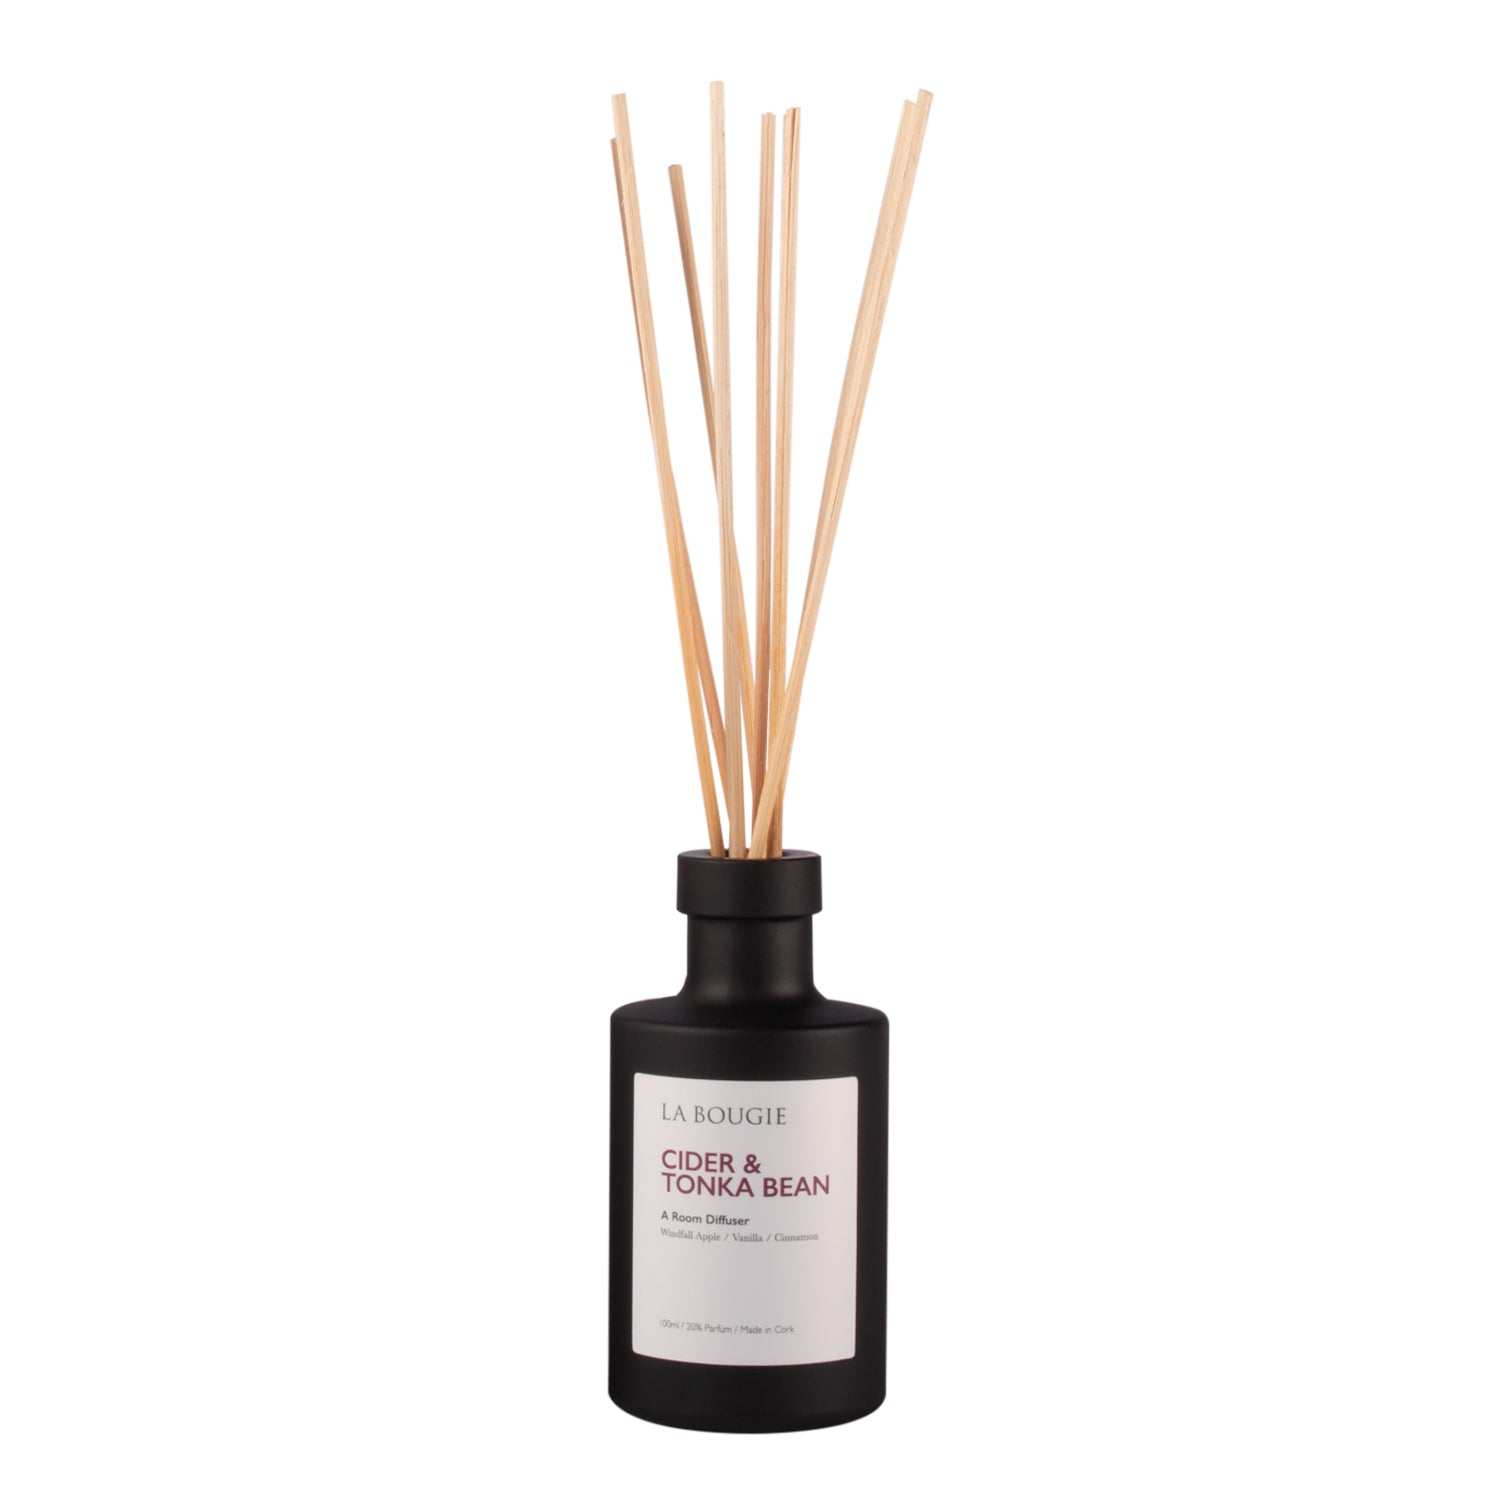 Cider and Tonka Bean Diffuser